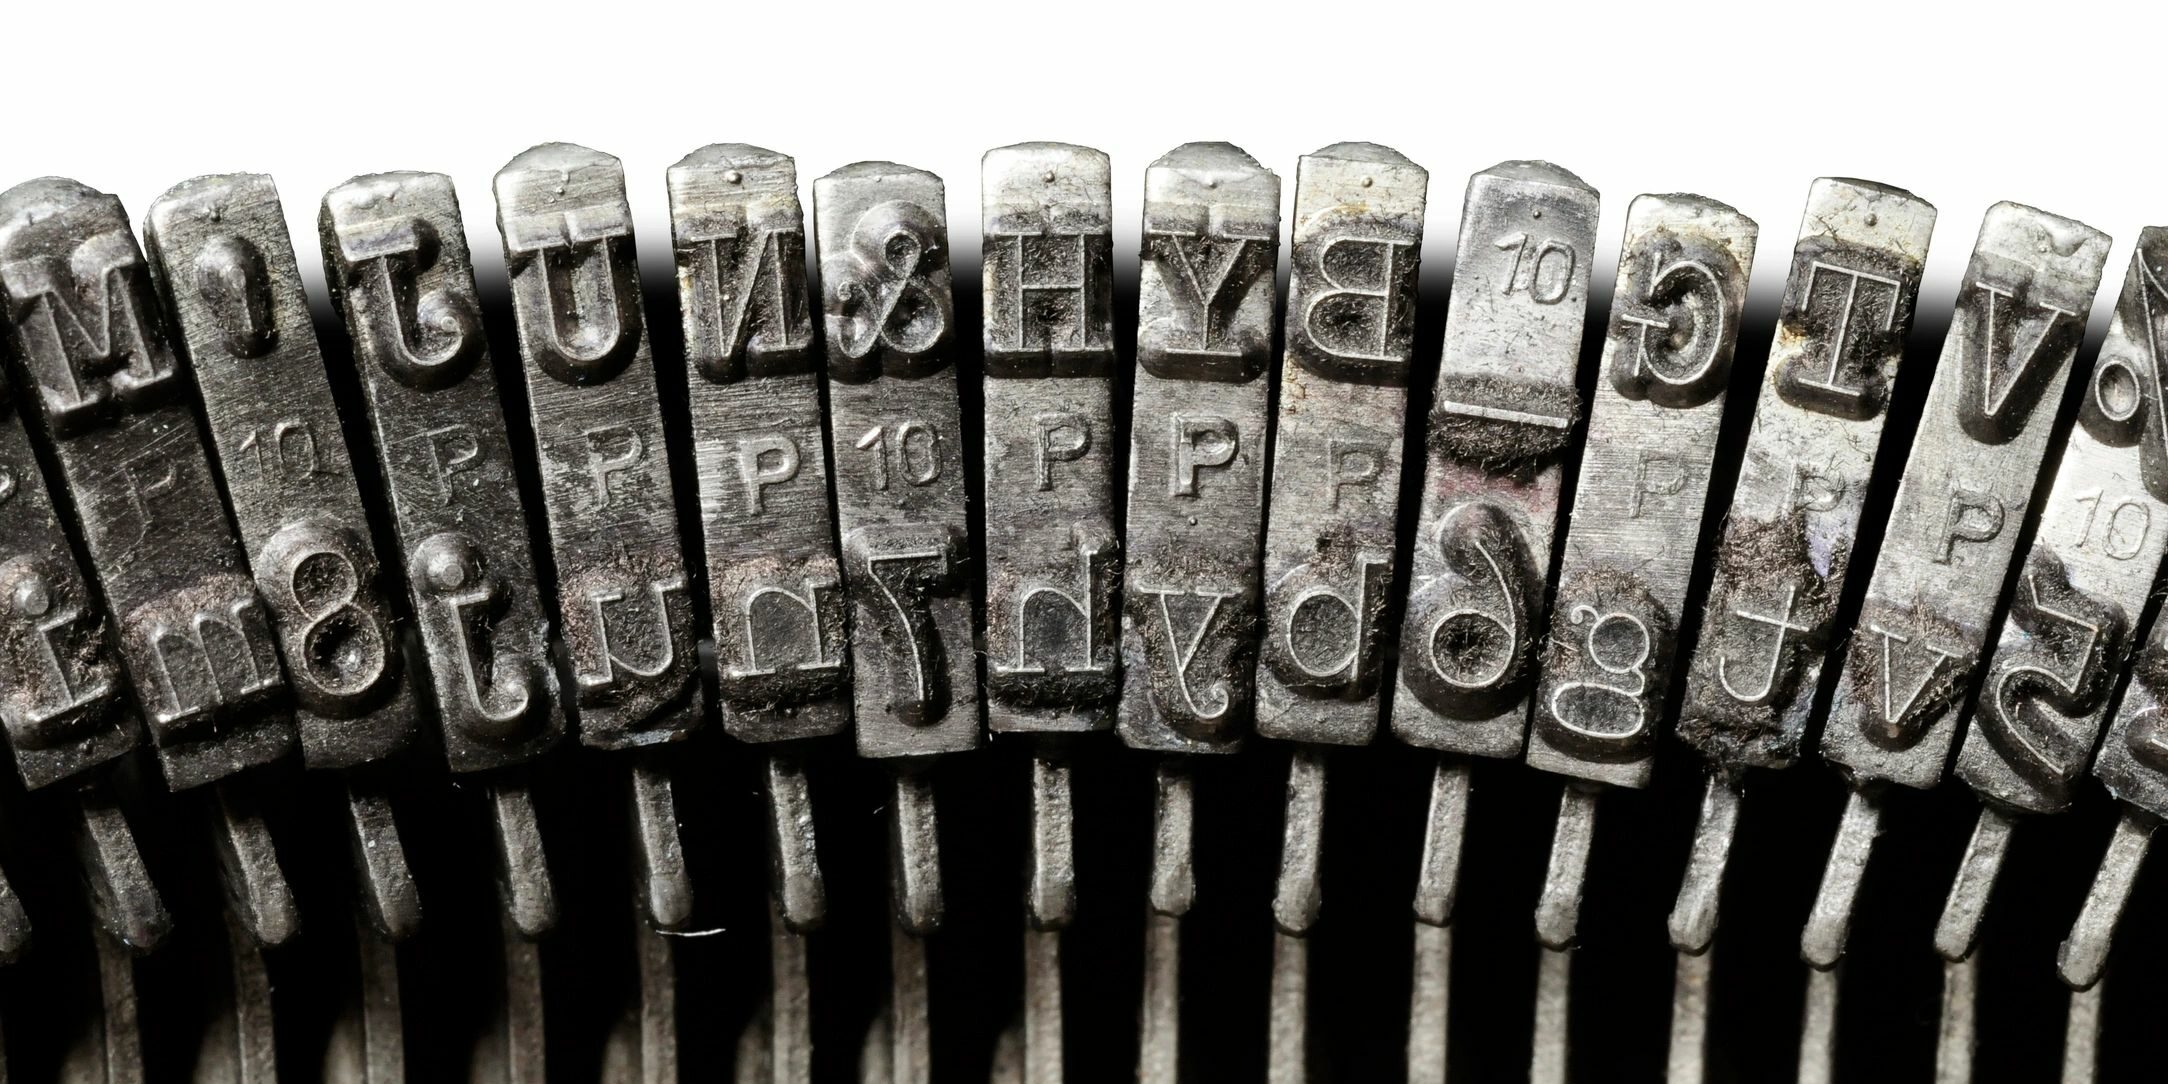 image of keys on an old-fashioned keyboard